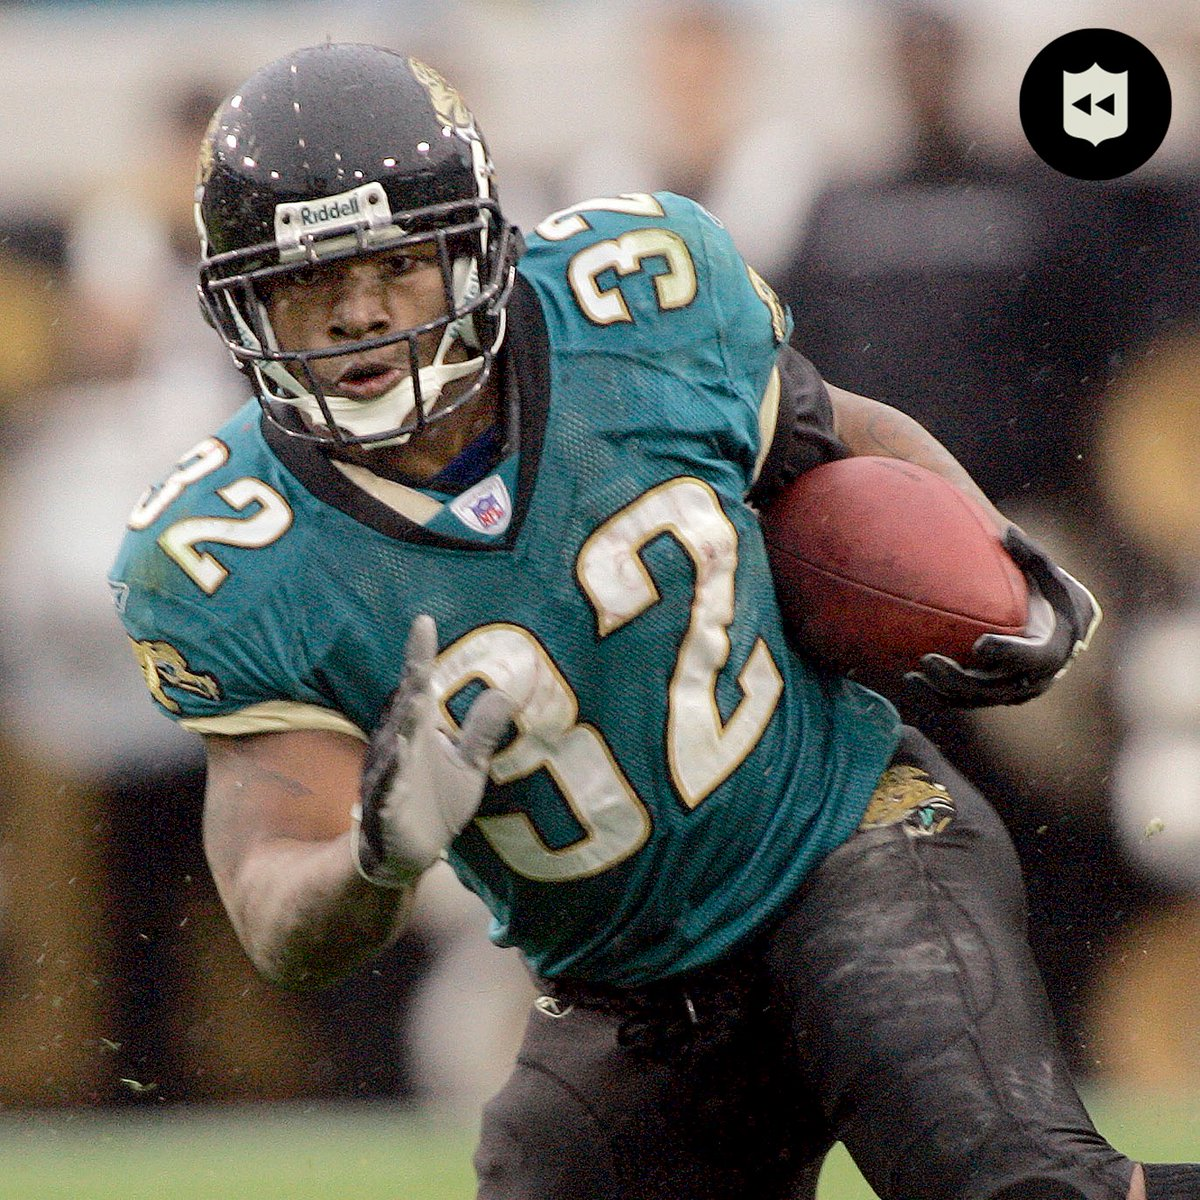 The time @MJD completely disappeared from the screen before running for a TD 🧐 @Jaguars (Dec. 24, 2006) https://t.co/hnA0Rsaf5M